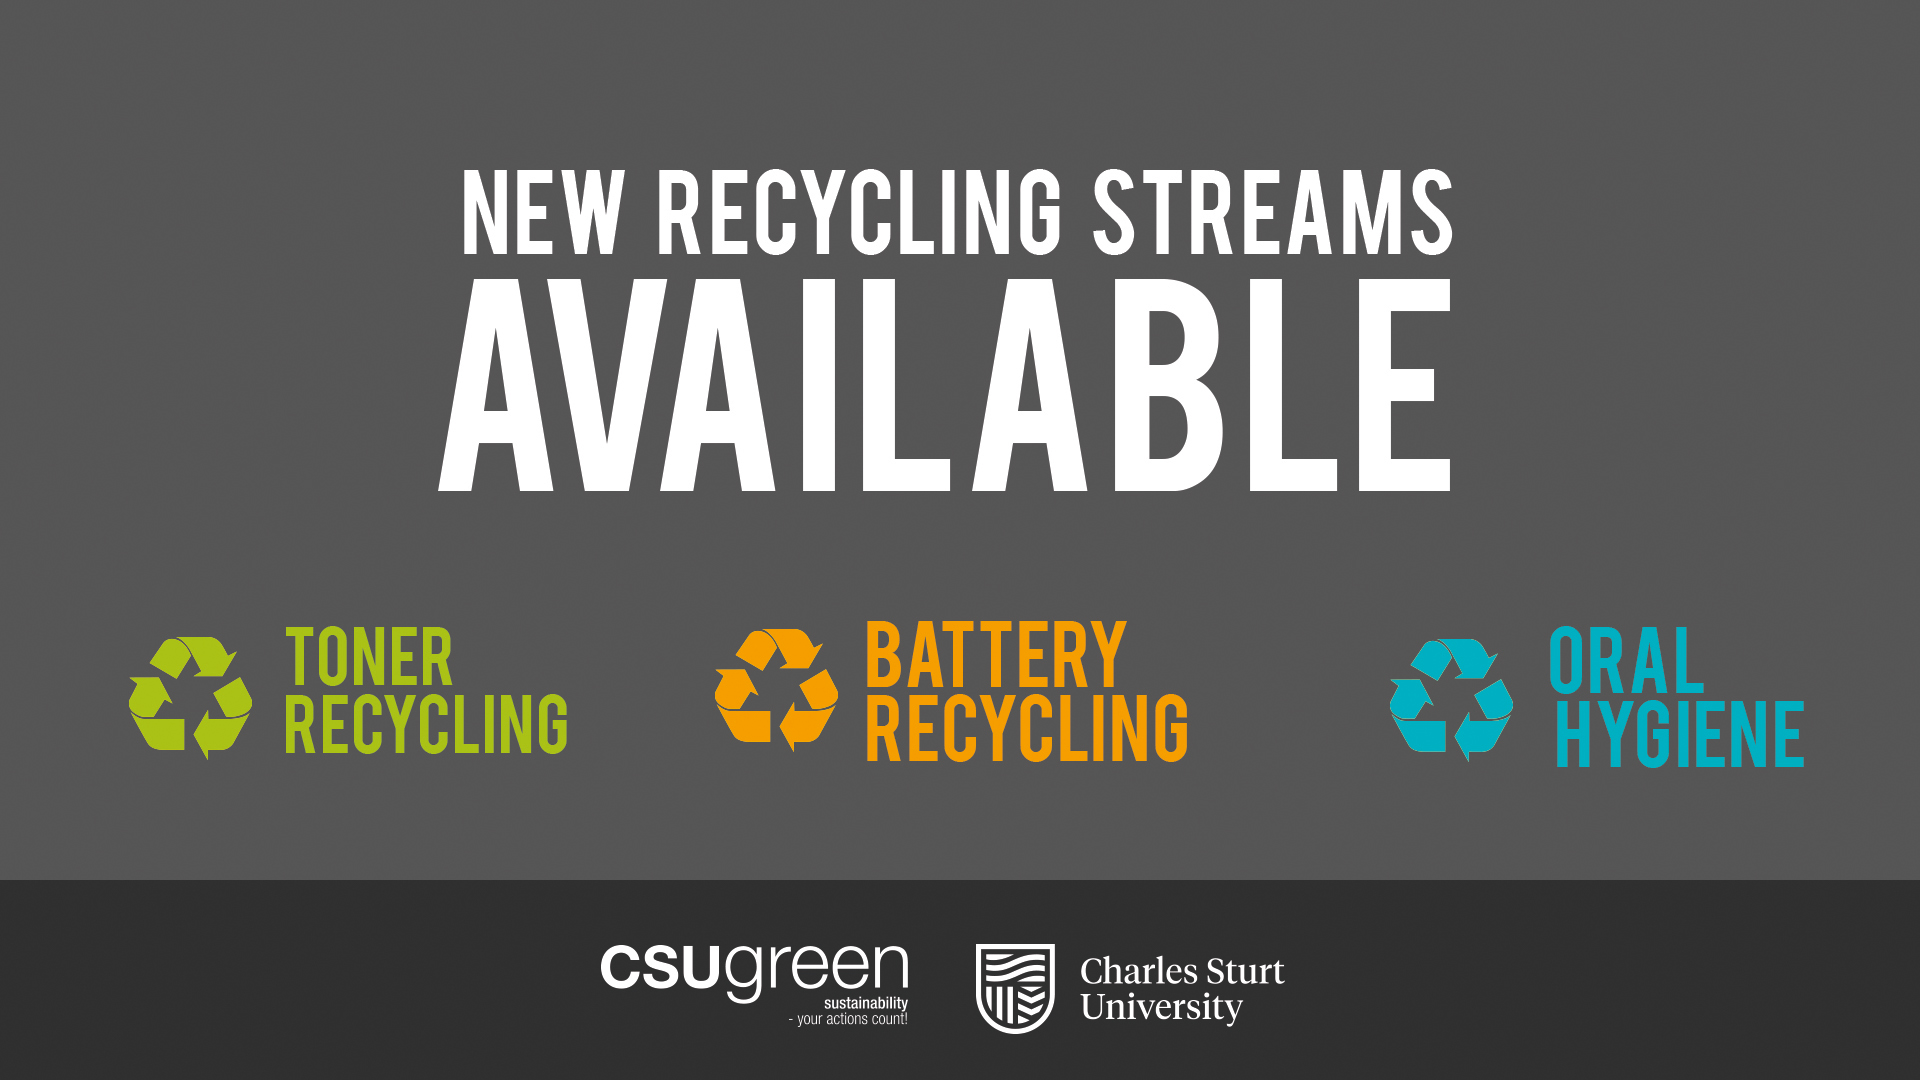 New recycling available - toner, battery and oral care product recycling